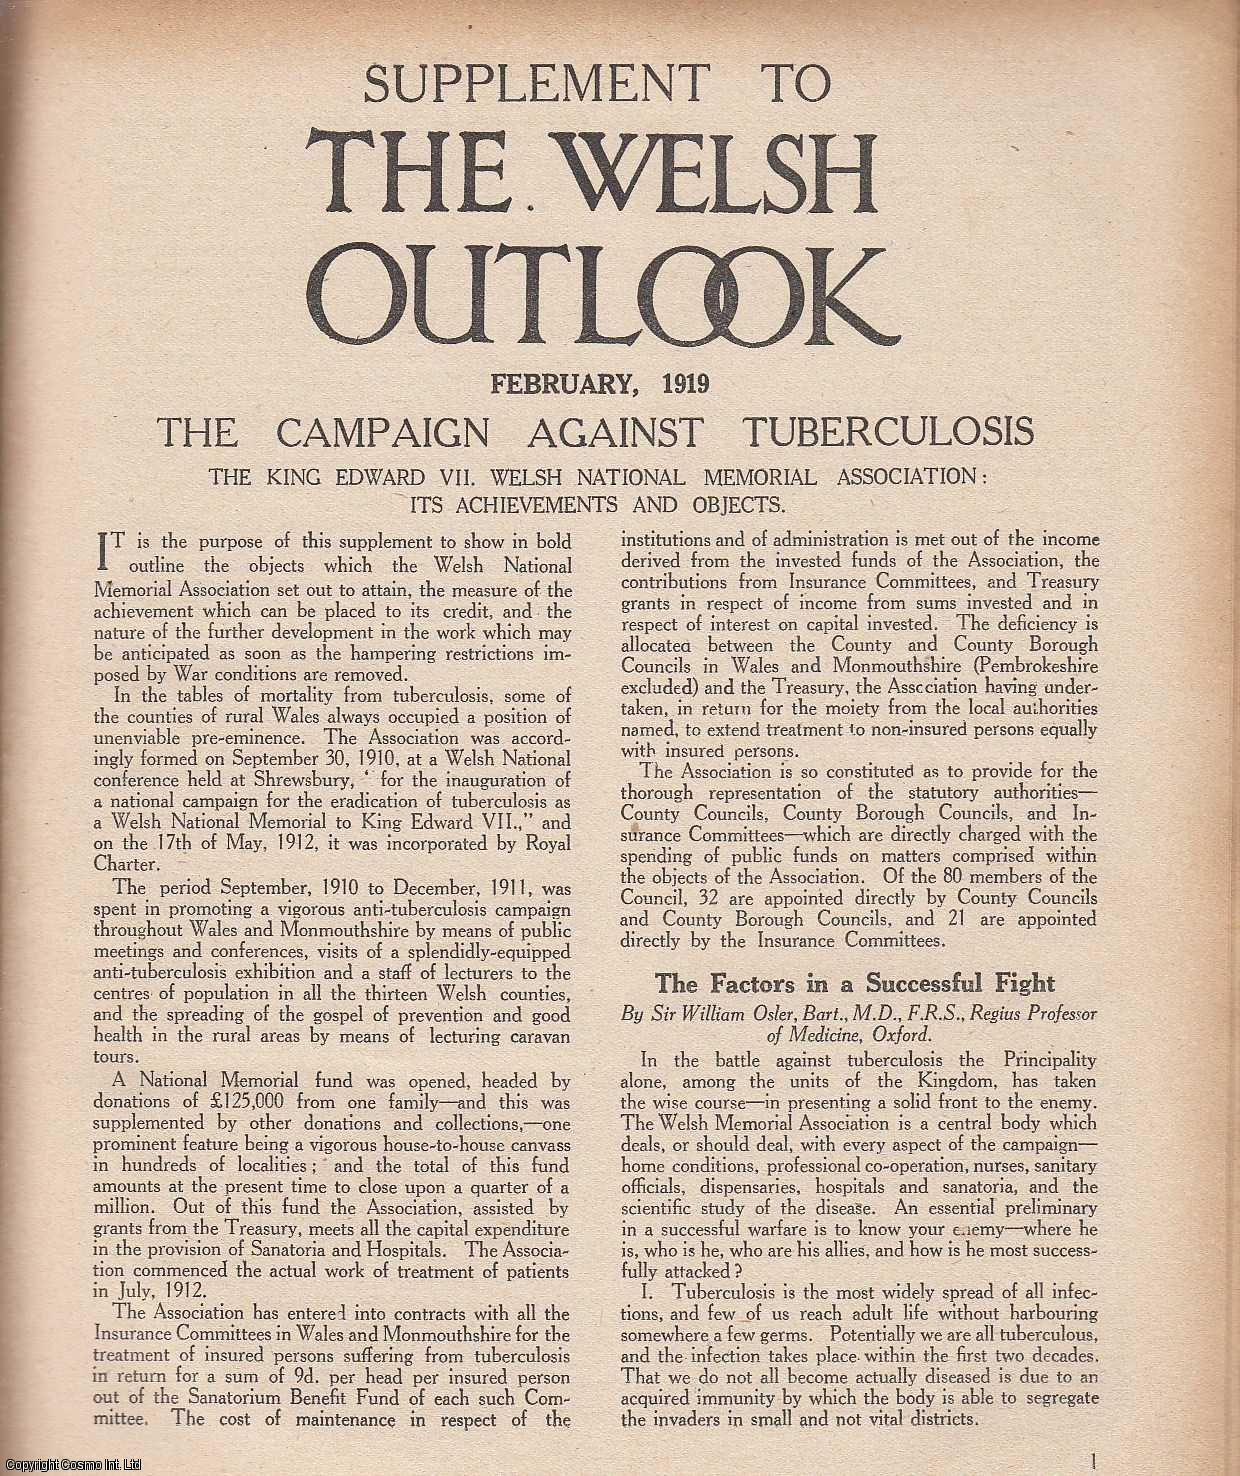 THOMAS JONES (EDITOR) - The Welsh Outlook. A Monthly Journal of National Social Progress, Supplement, February 1919.The Campaign against Tuberculosis: The King Edward VII. Welsh National Memorial Association: Its Achievements and Objects. An original article from the Welsh Outlook magazine, 1919.